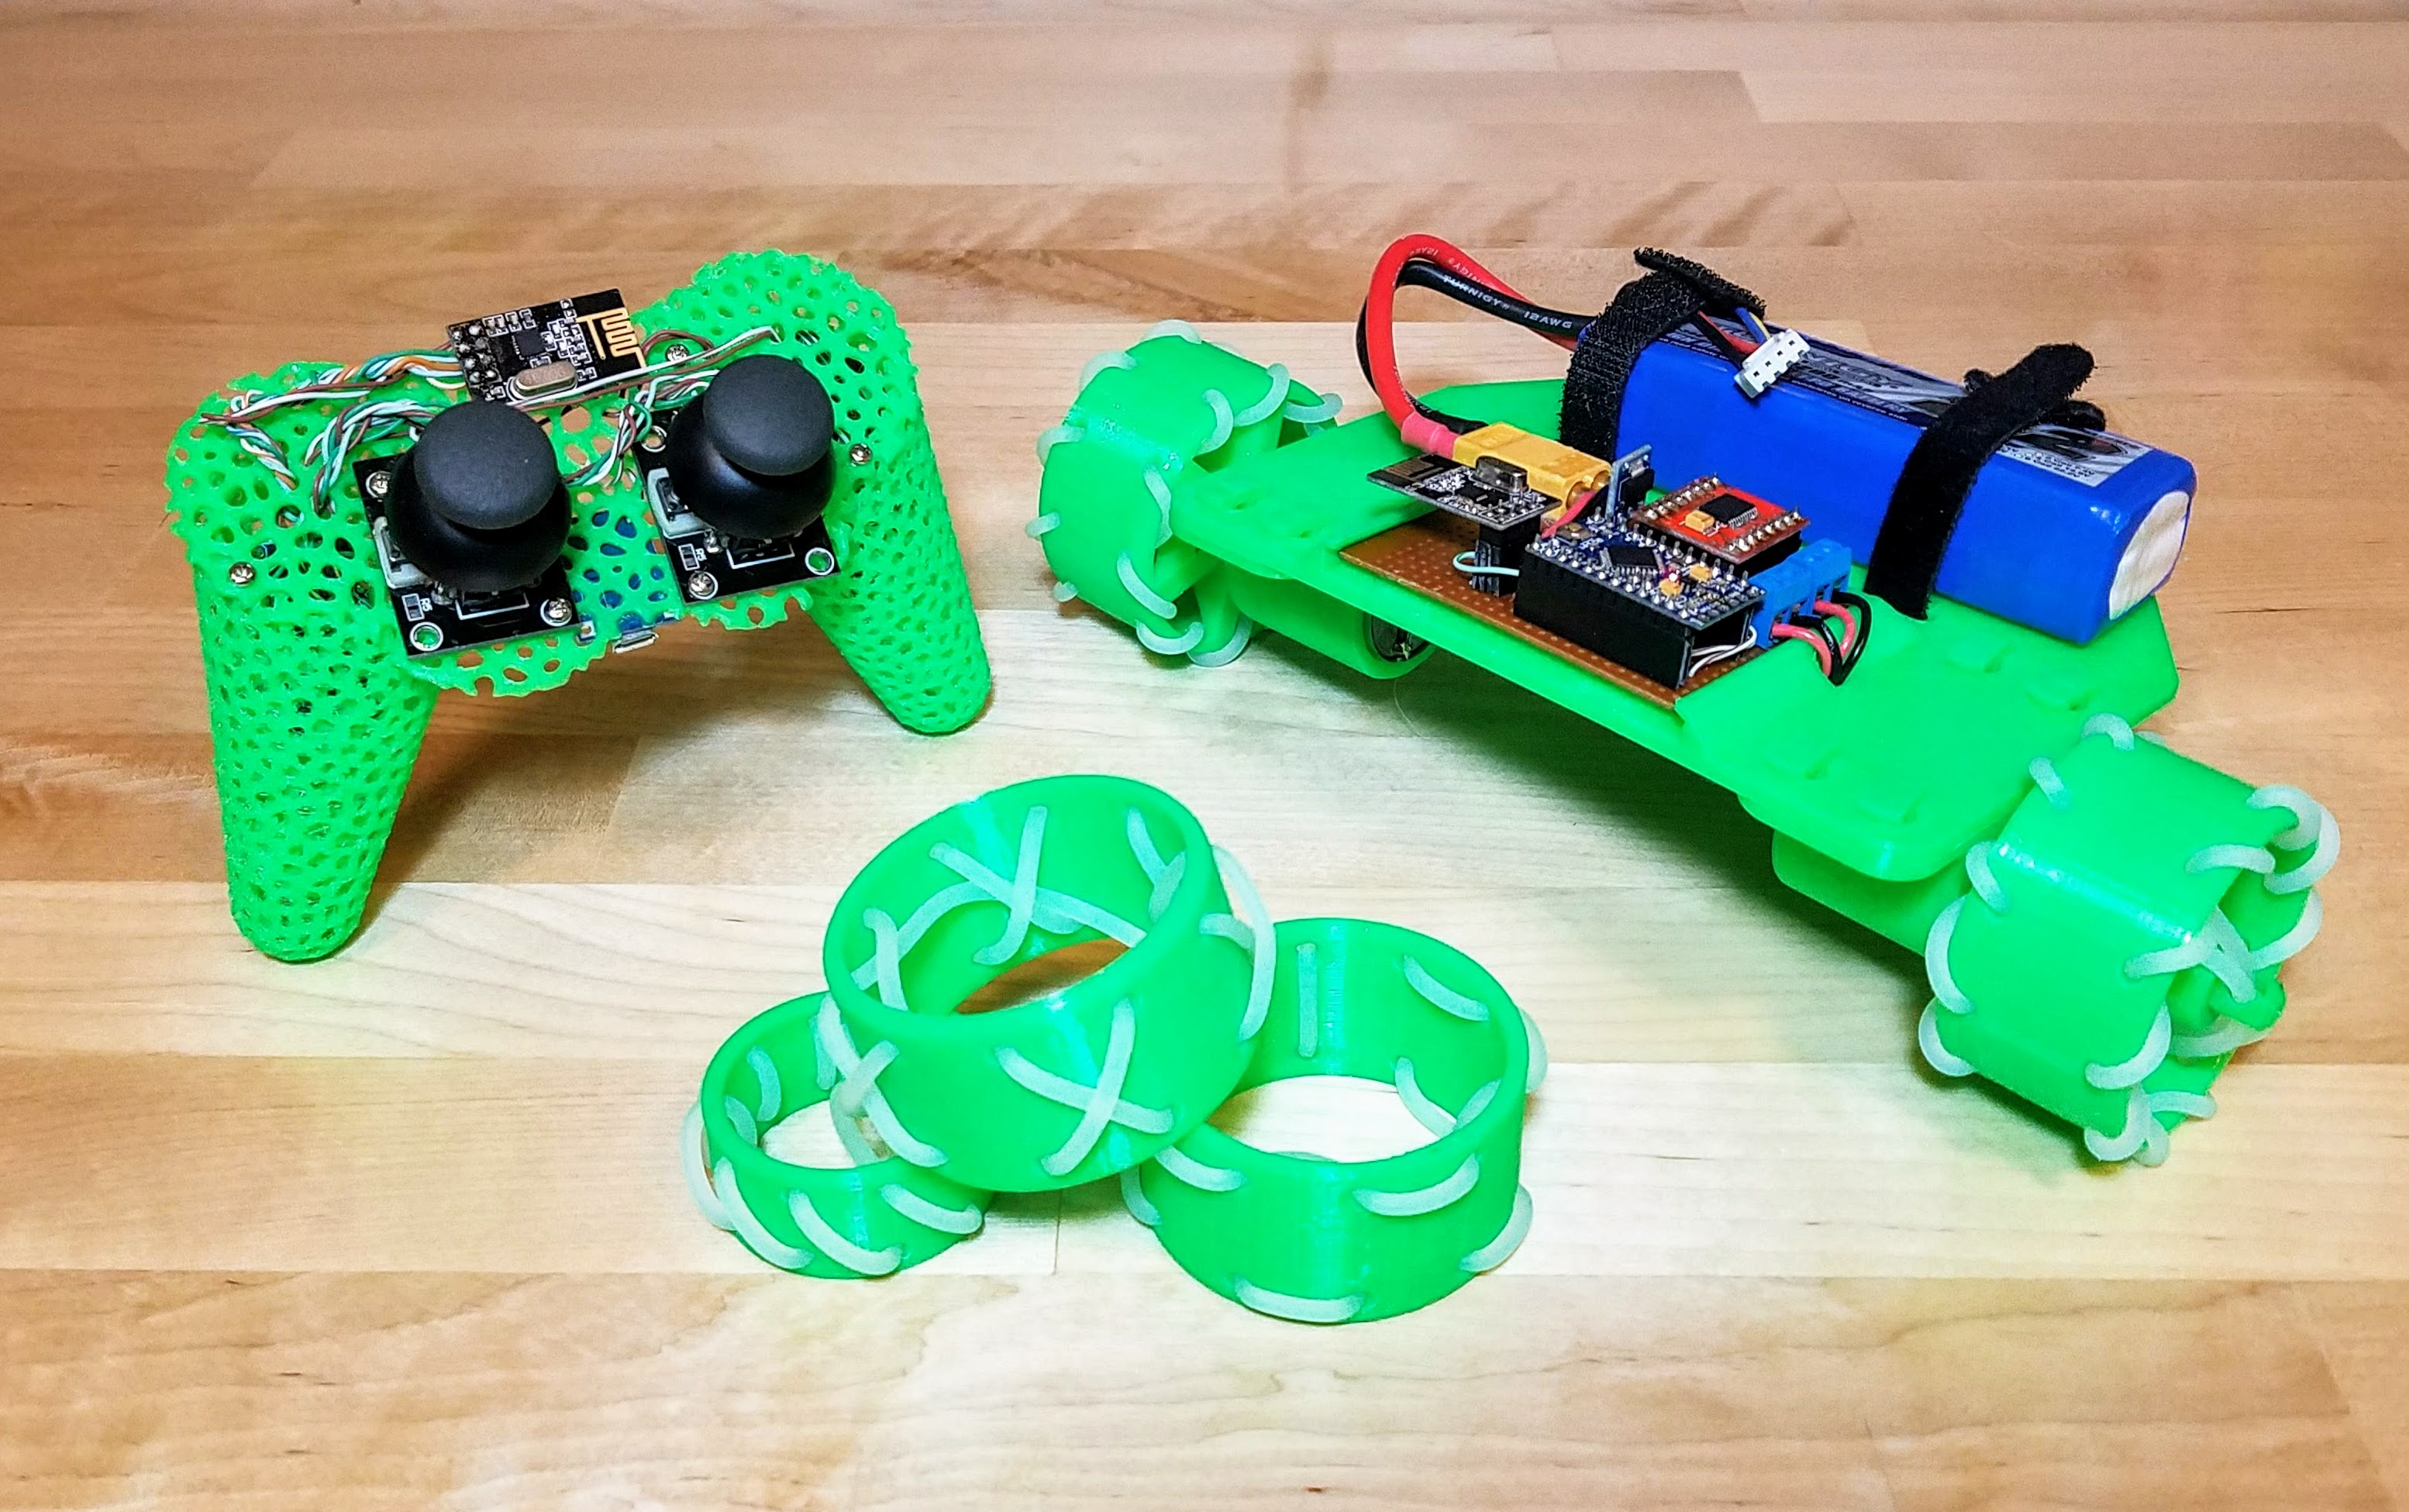 Picture of Voronoi Controller and Modular RC Car